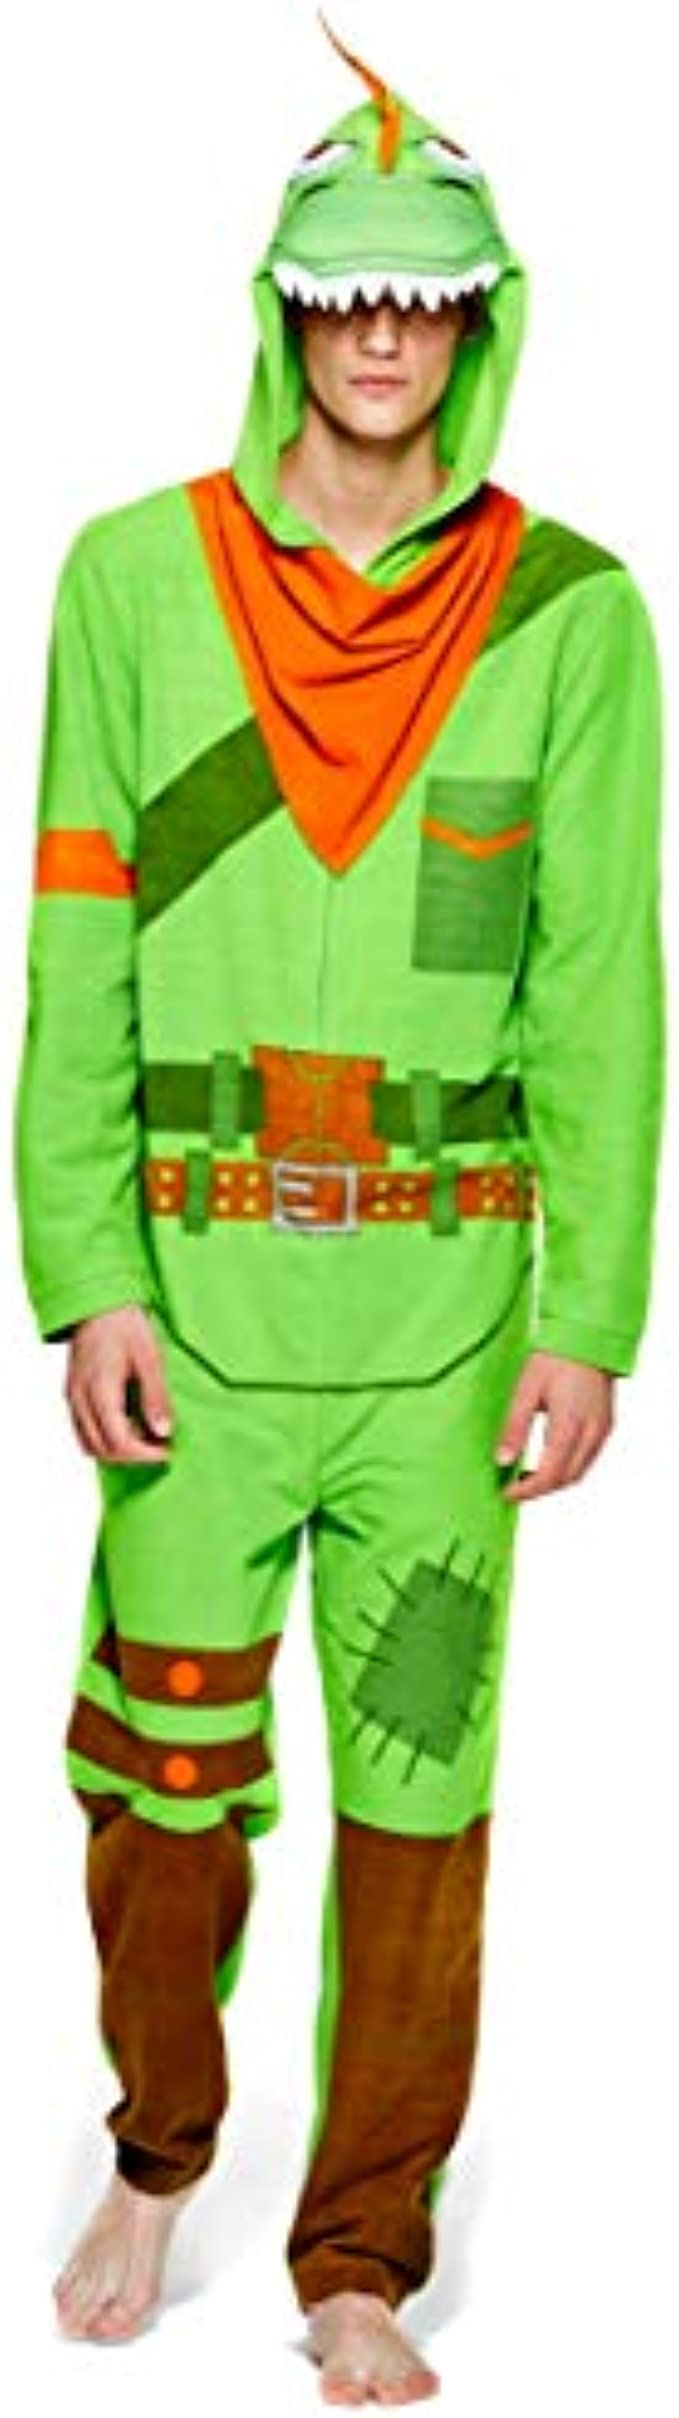 Epic Games Fortnite Rex Mens Union Suit - Onezie Adult Costume Sleeper